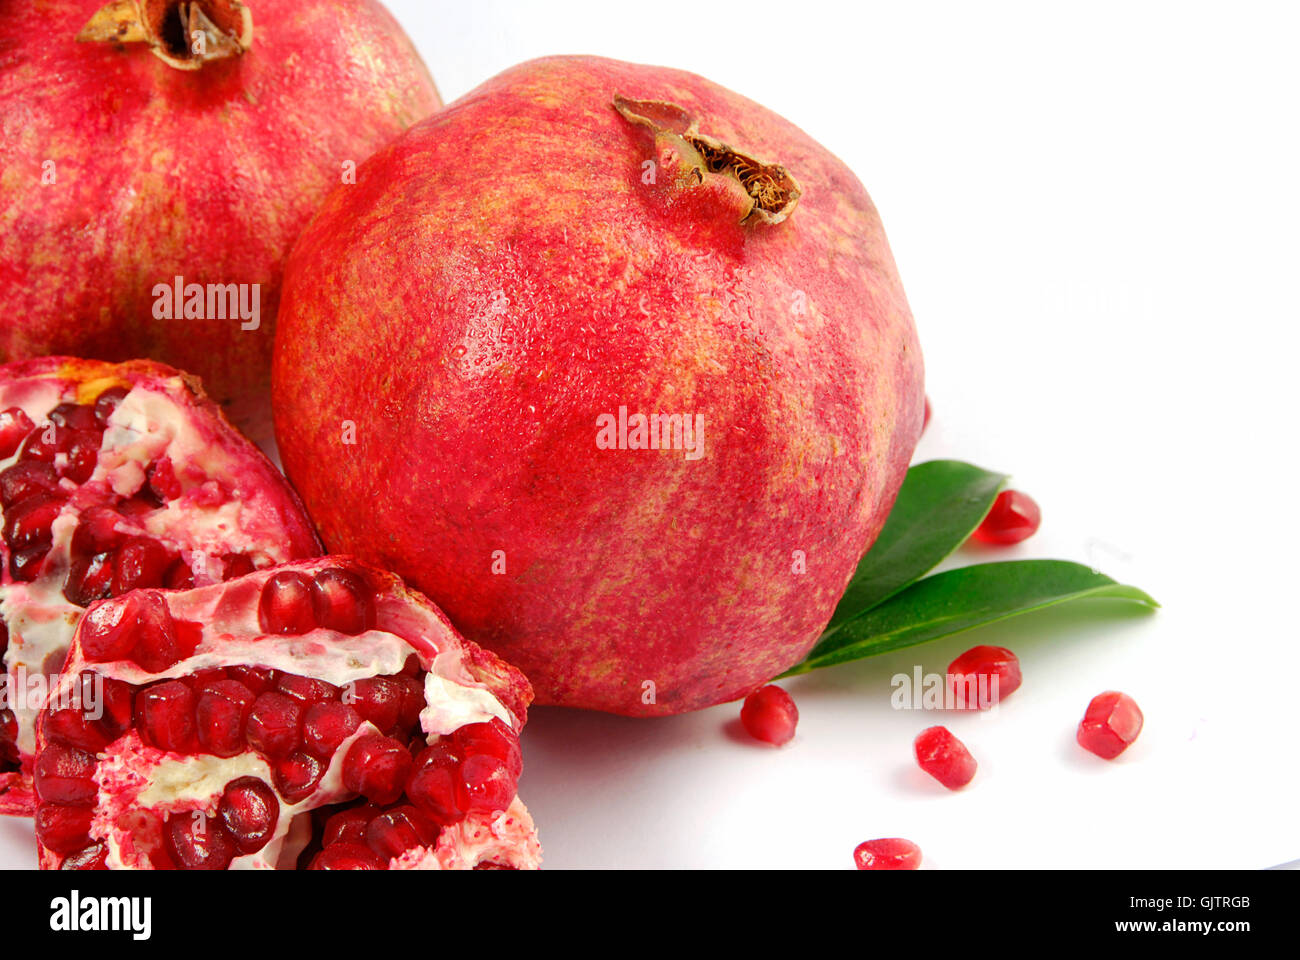 ripe fruit emblements - Stock Image